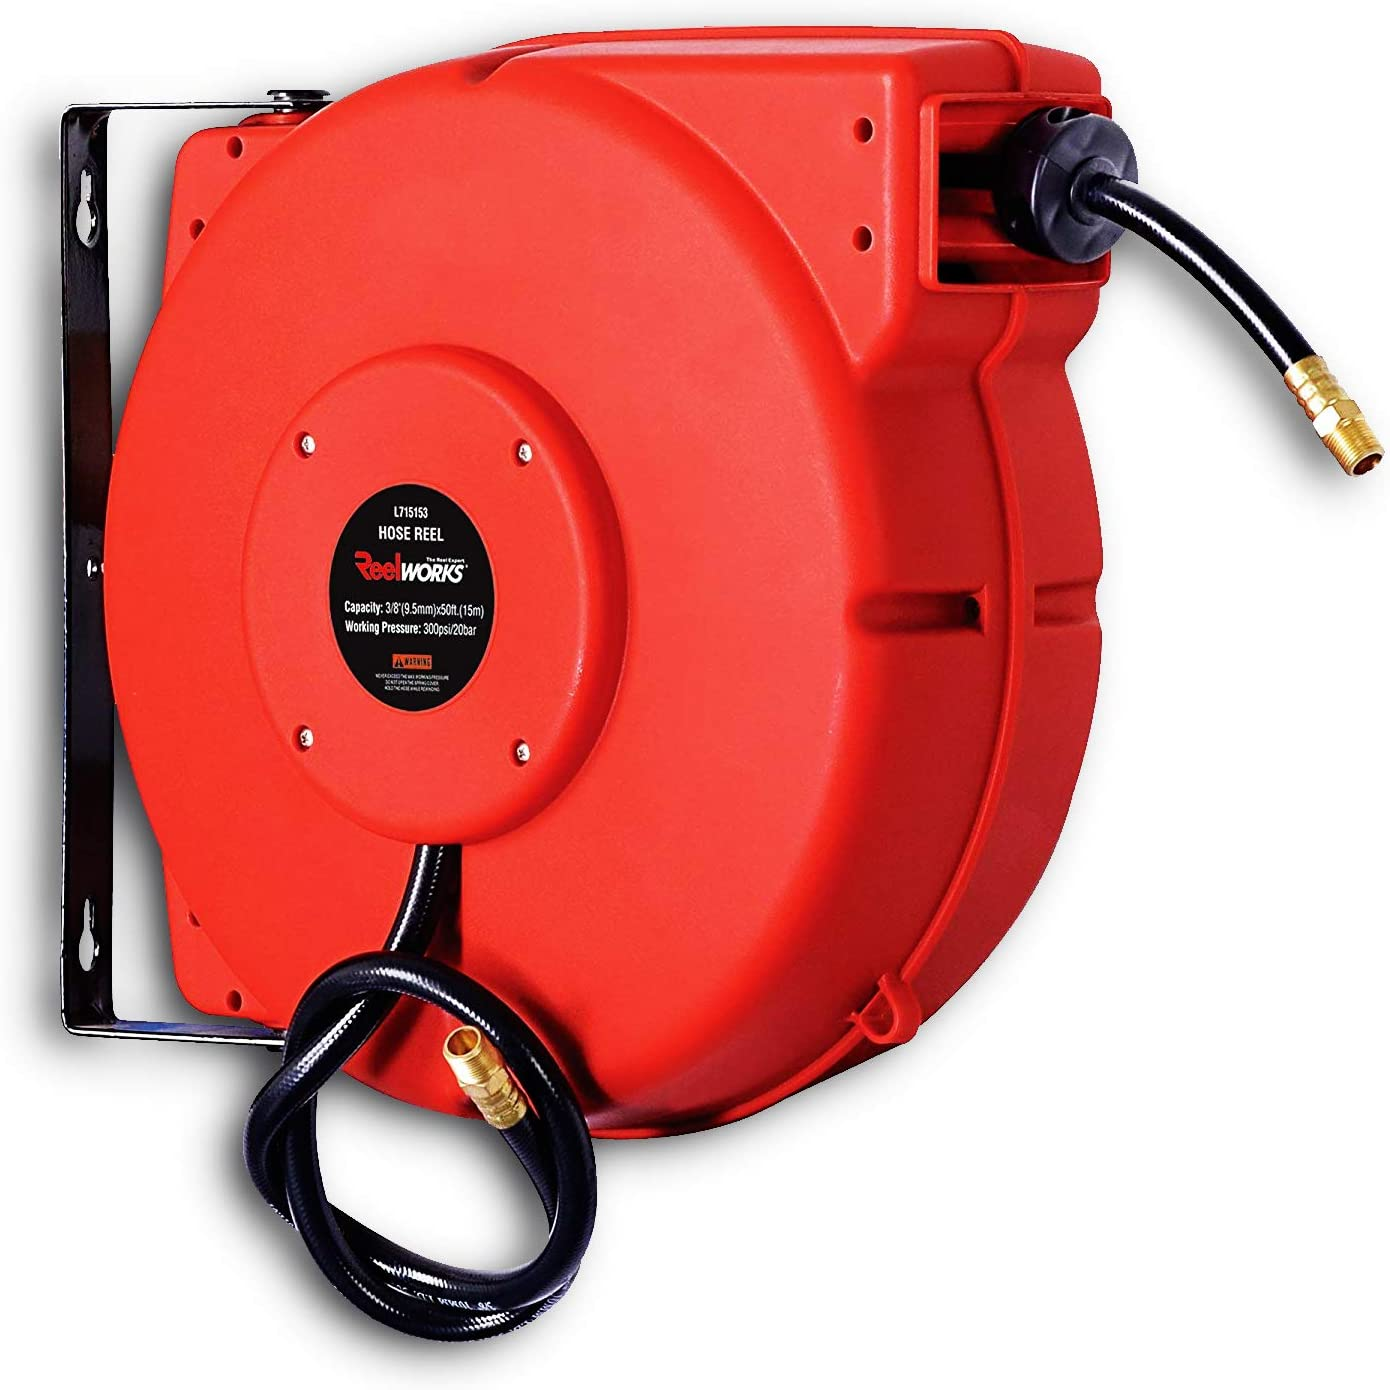 "ReelWorks L715153A Plastic Retractable Air Compressor/Water Hose Reel with 3/8"" x 50' Hybrid Polymer Hose, Max. 300 psi"